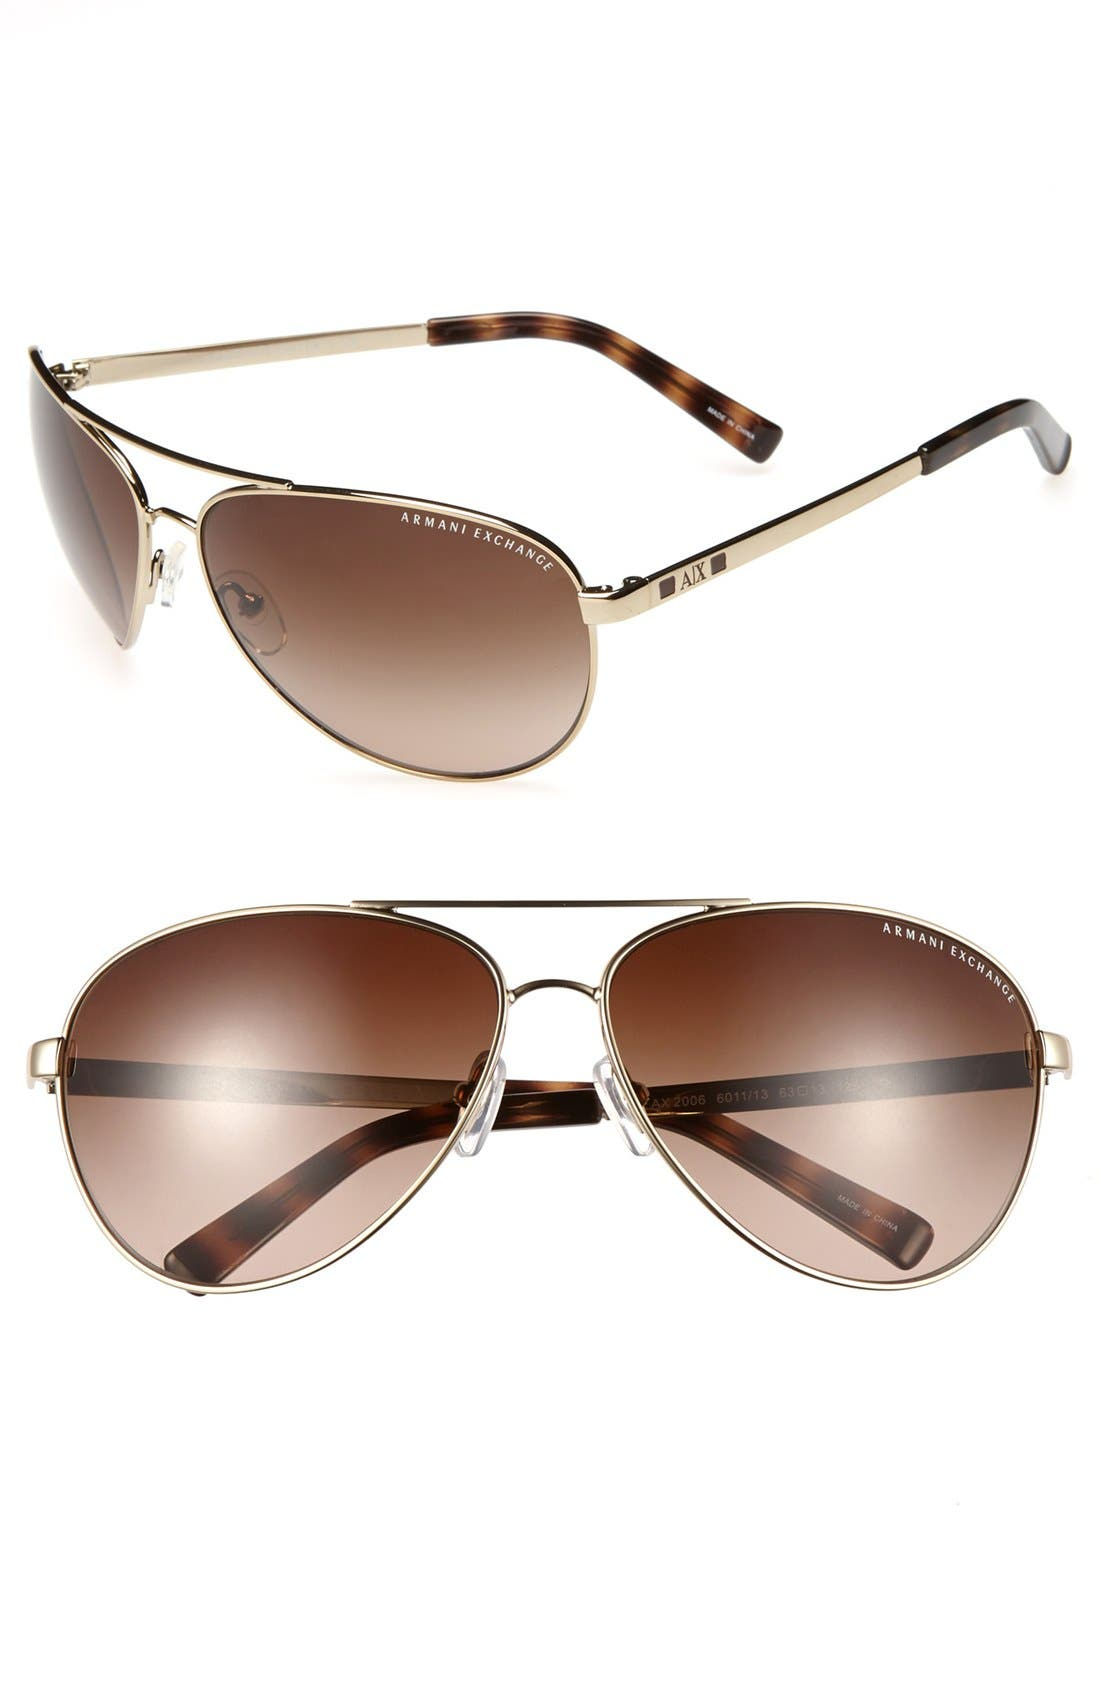 Alternate Image 1 Selected - AX Armani Exchange 63mm Aviator Sunglasses